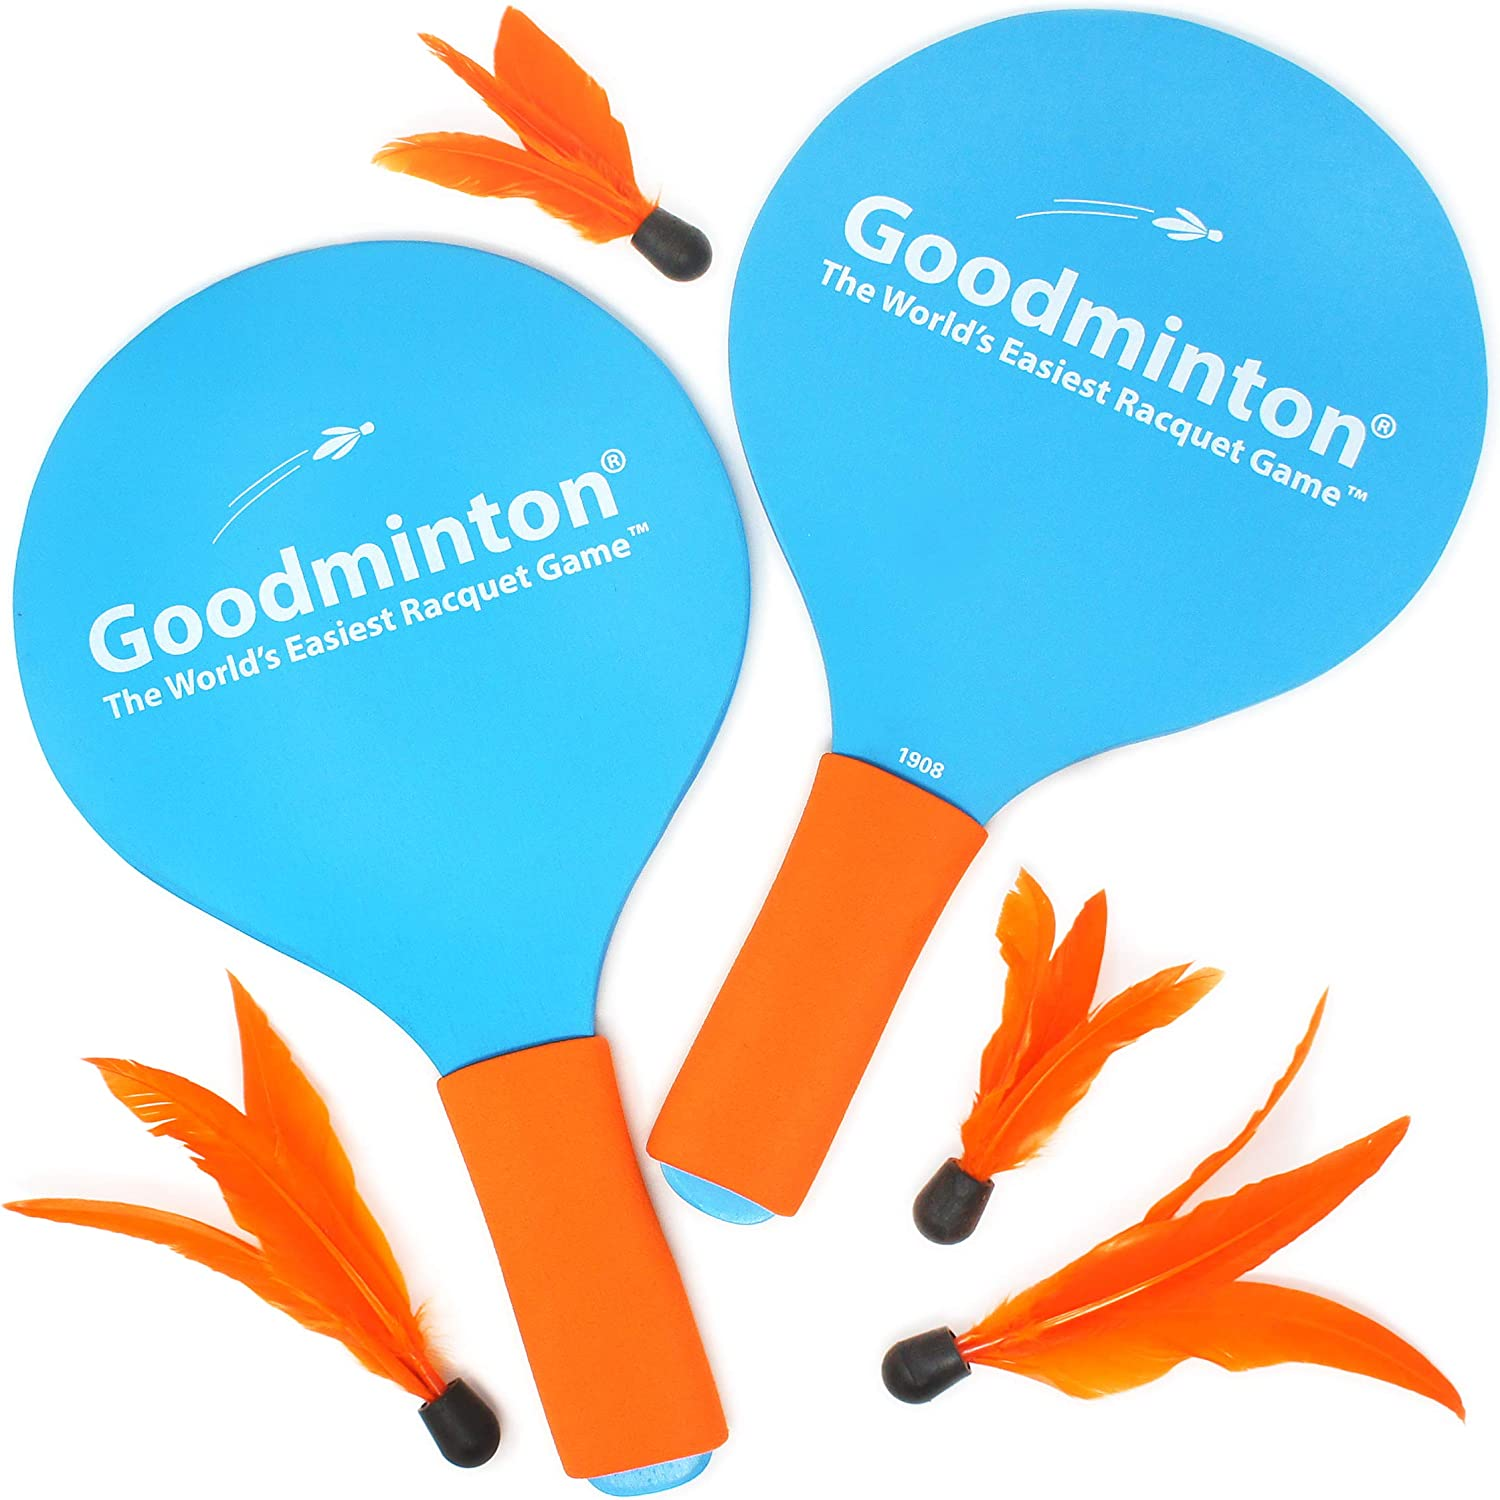 VIAHART Goodminton | The World's Easiest Racquet Game | an Indoor Outdoor Year-Round Fun Paddle Game Set for Boys, Girls, and People of All Ages : Sports & Outdoors